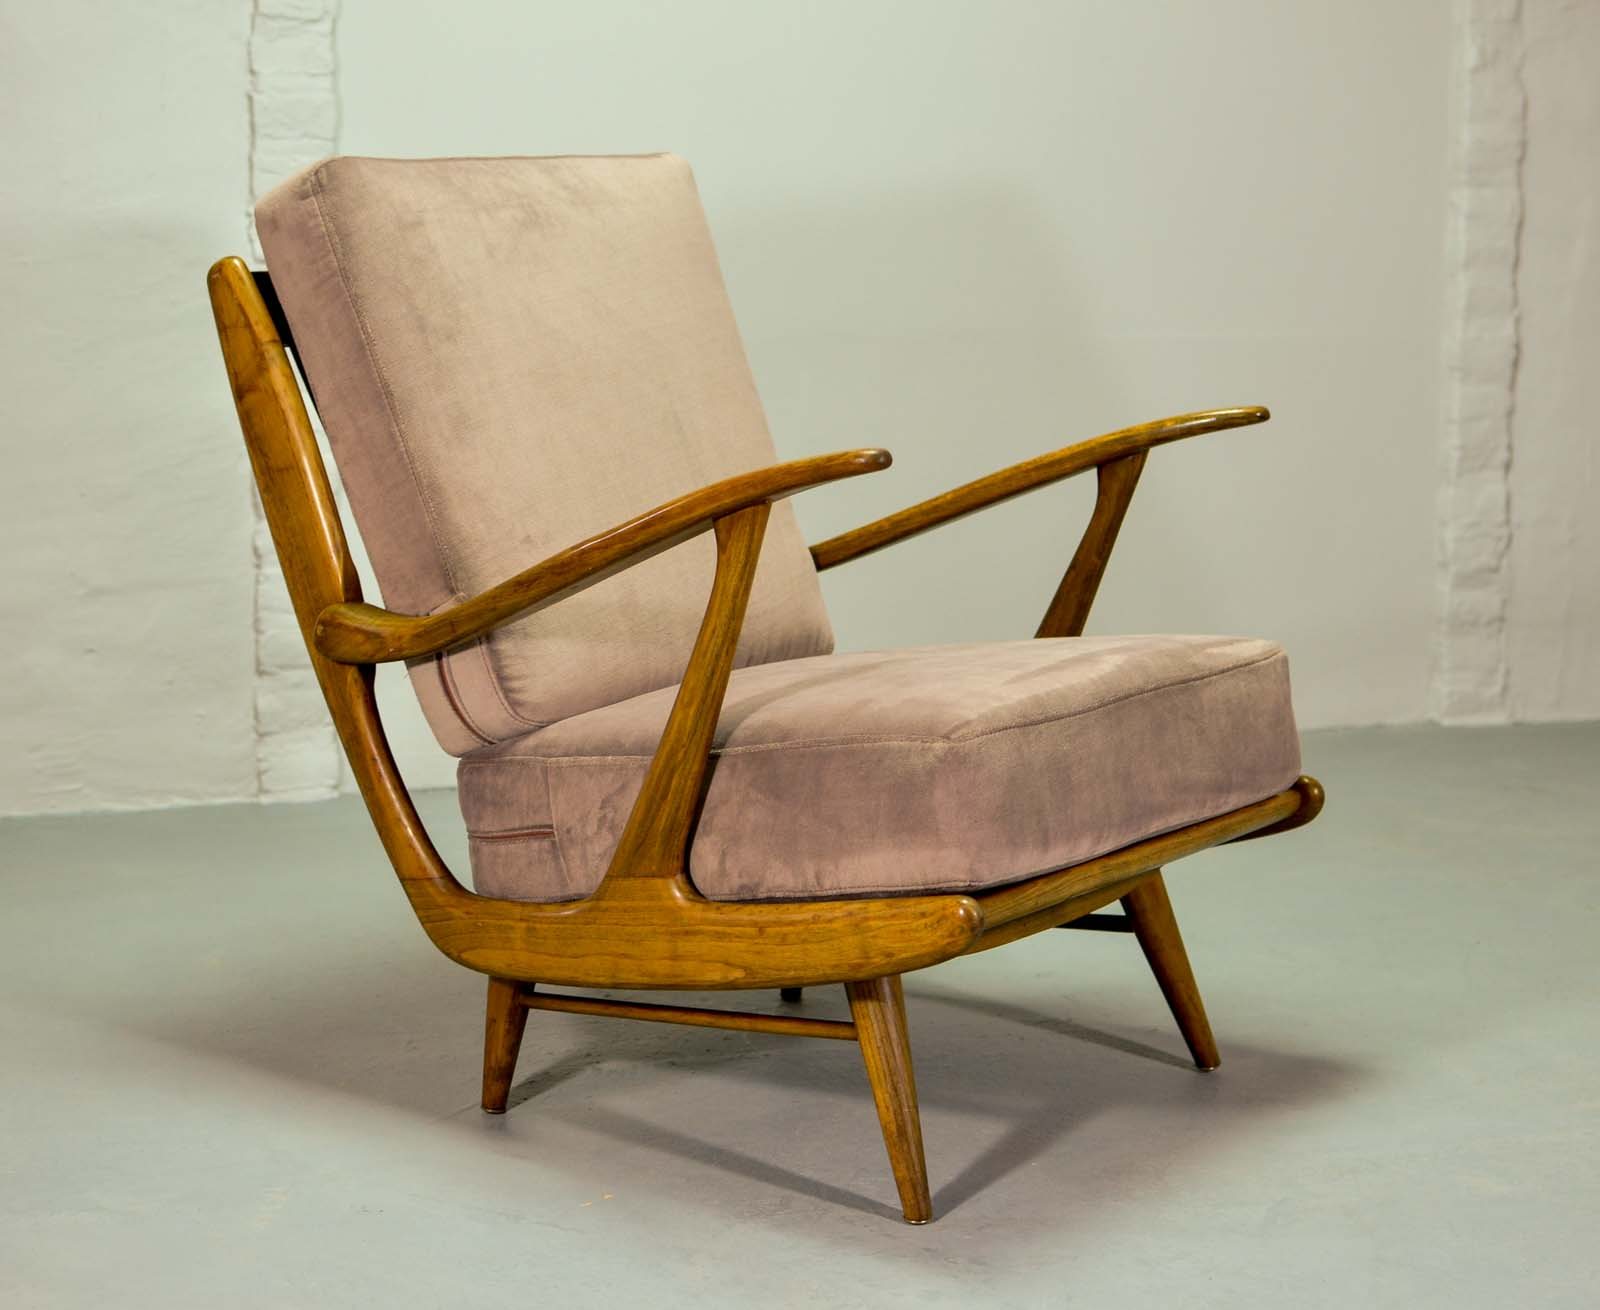 Mid Century Art Deco Influenced Spindle Back Lounge Chairs, 1950s